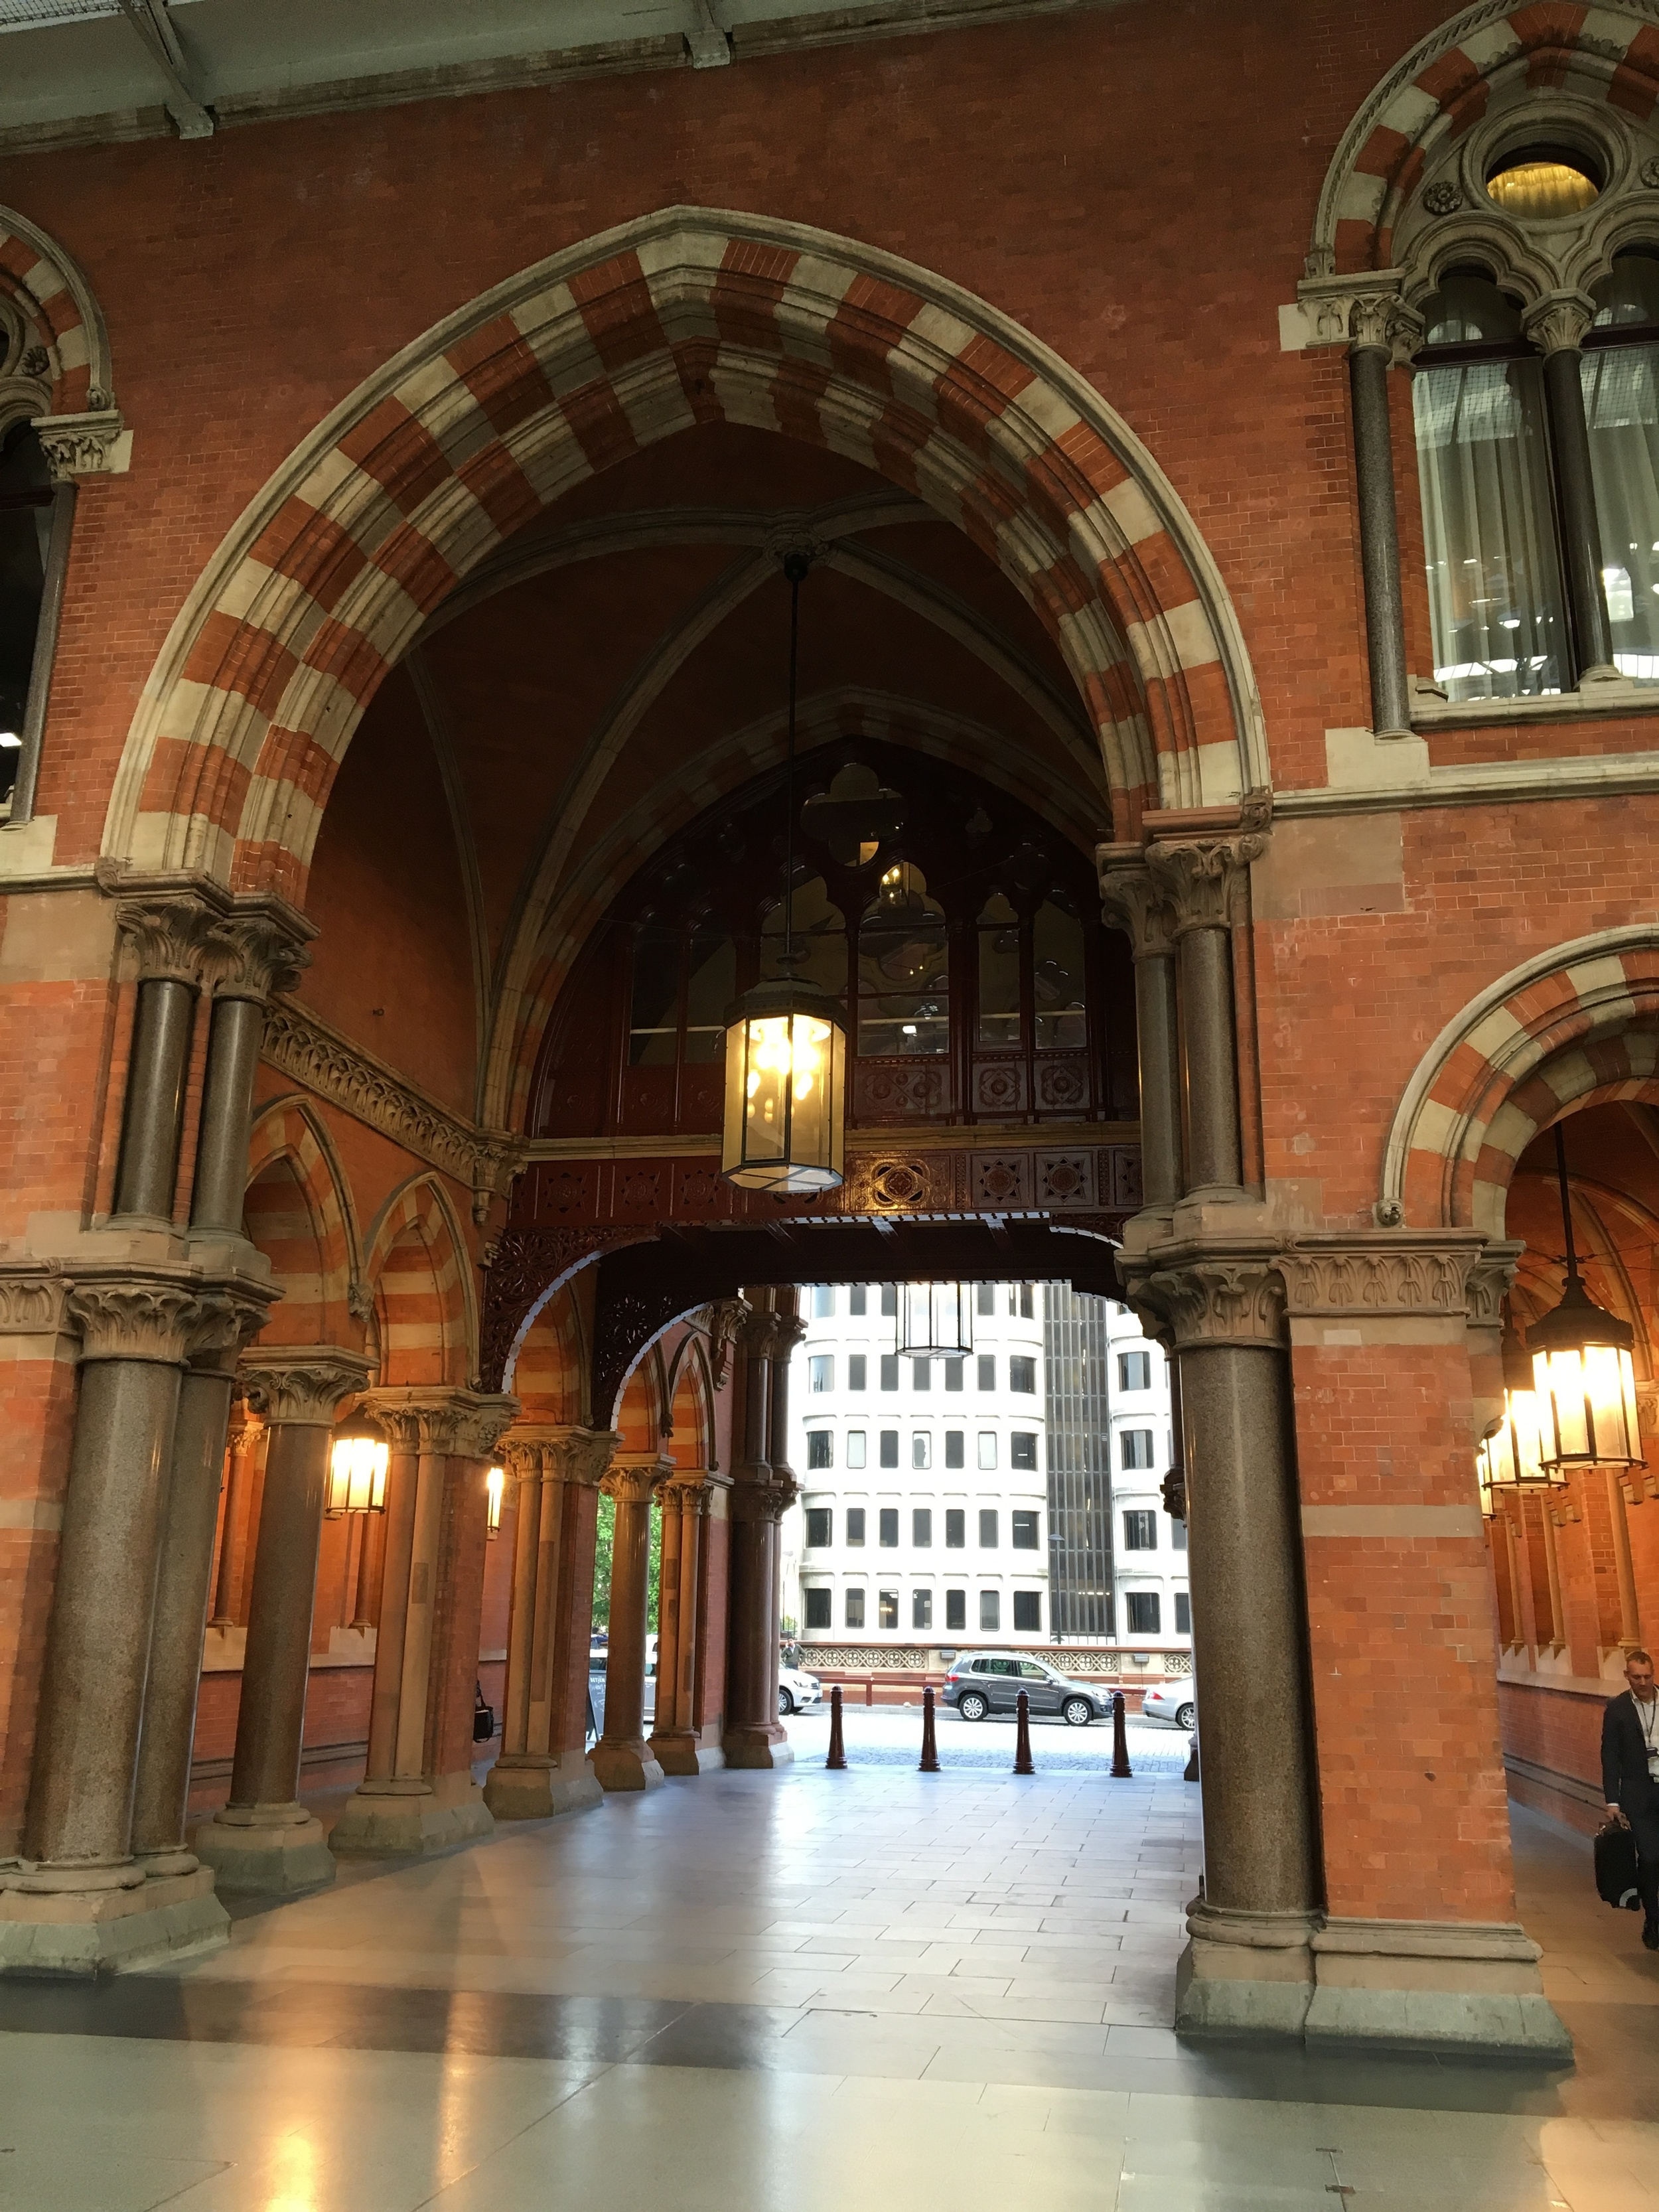 The dramatic entrance to the rail station and hotel lobby